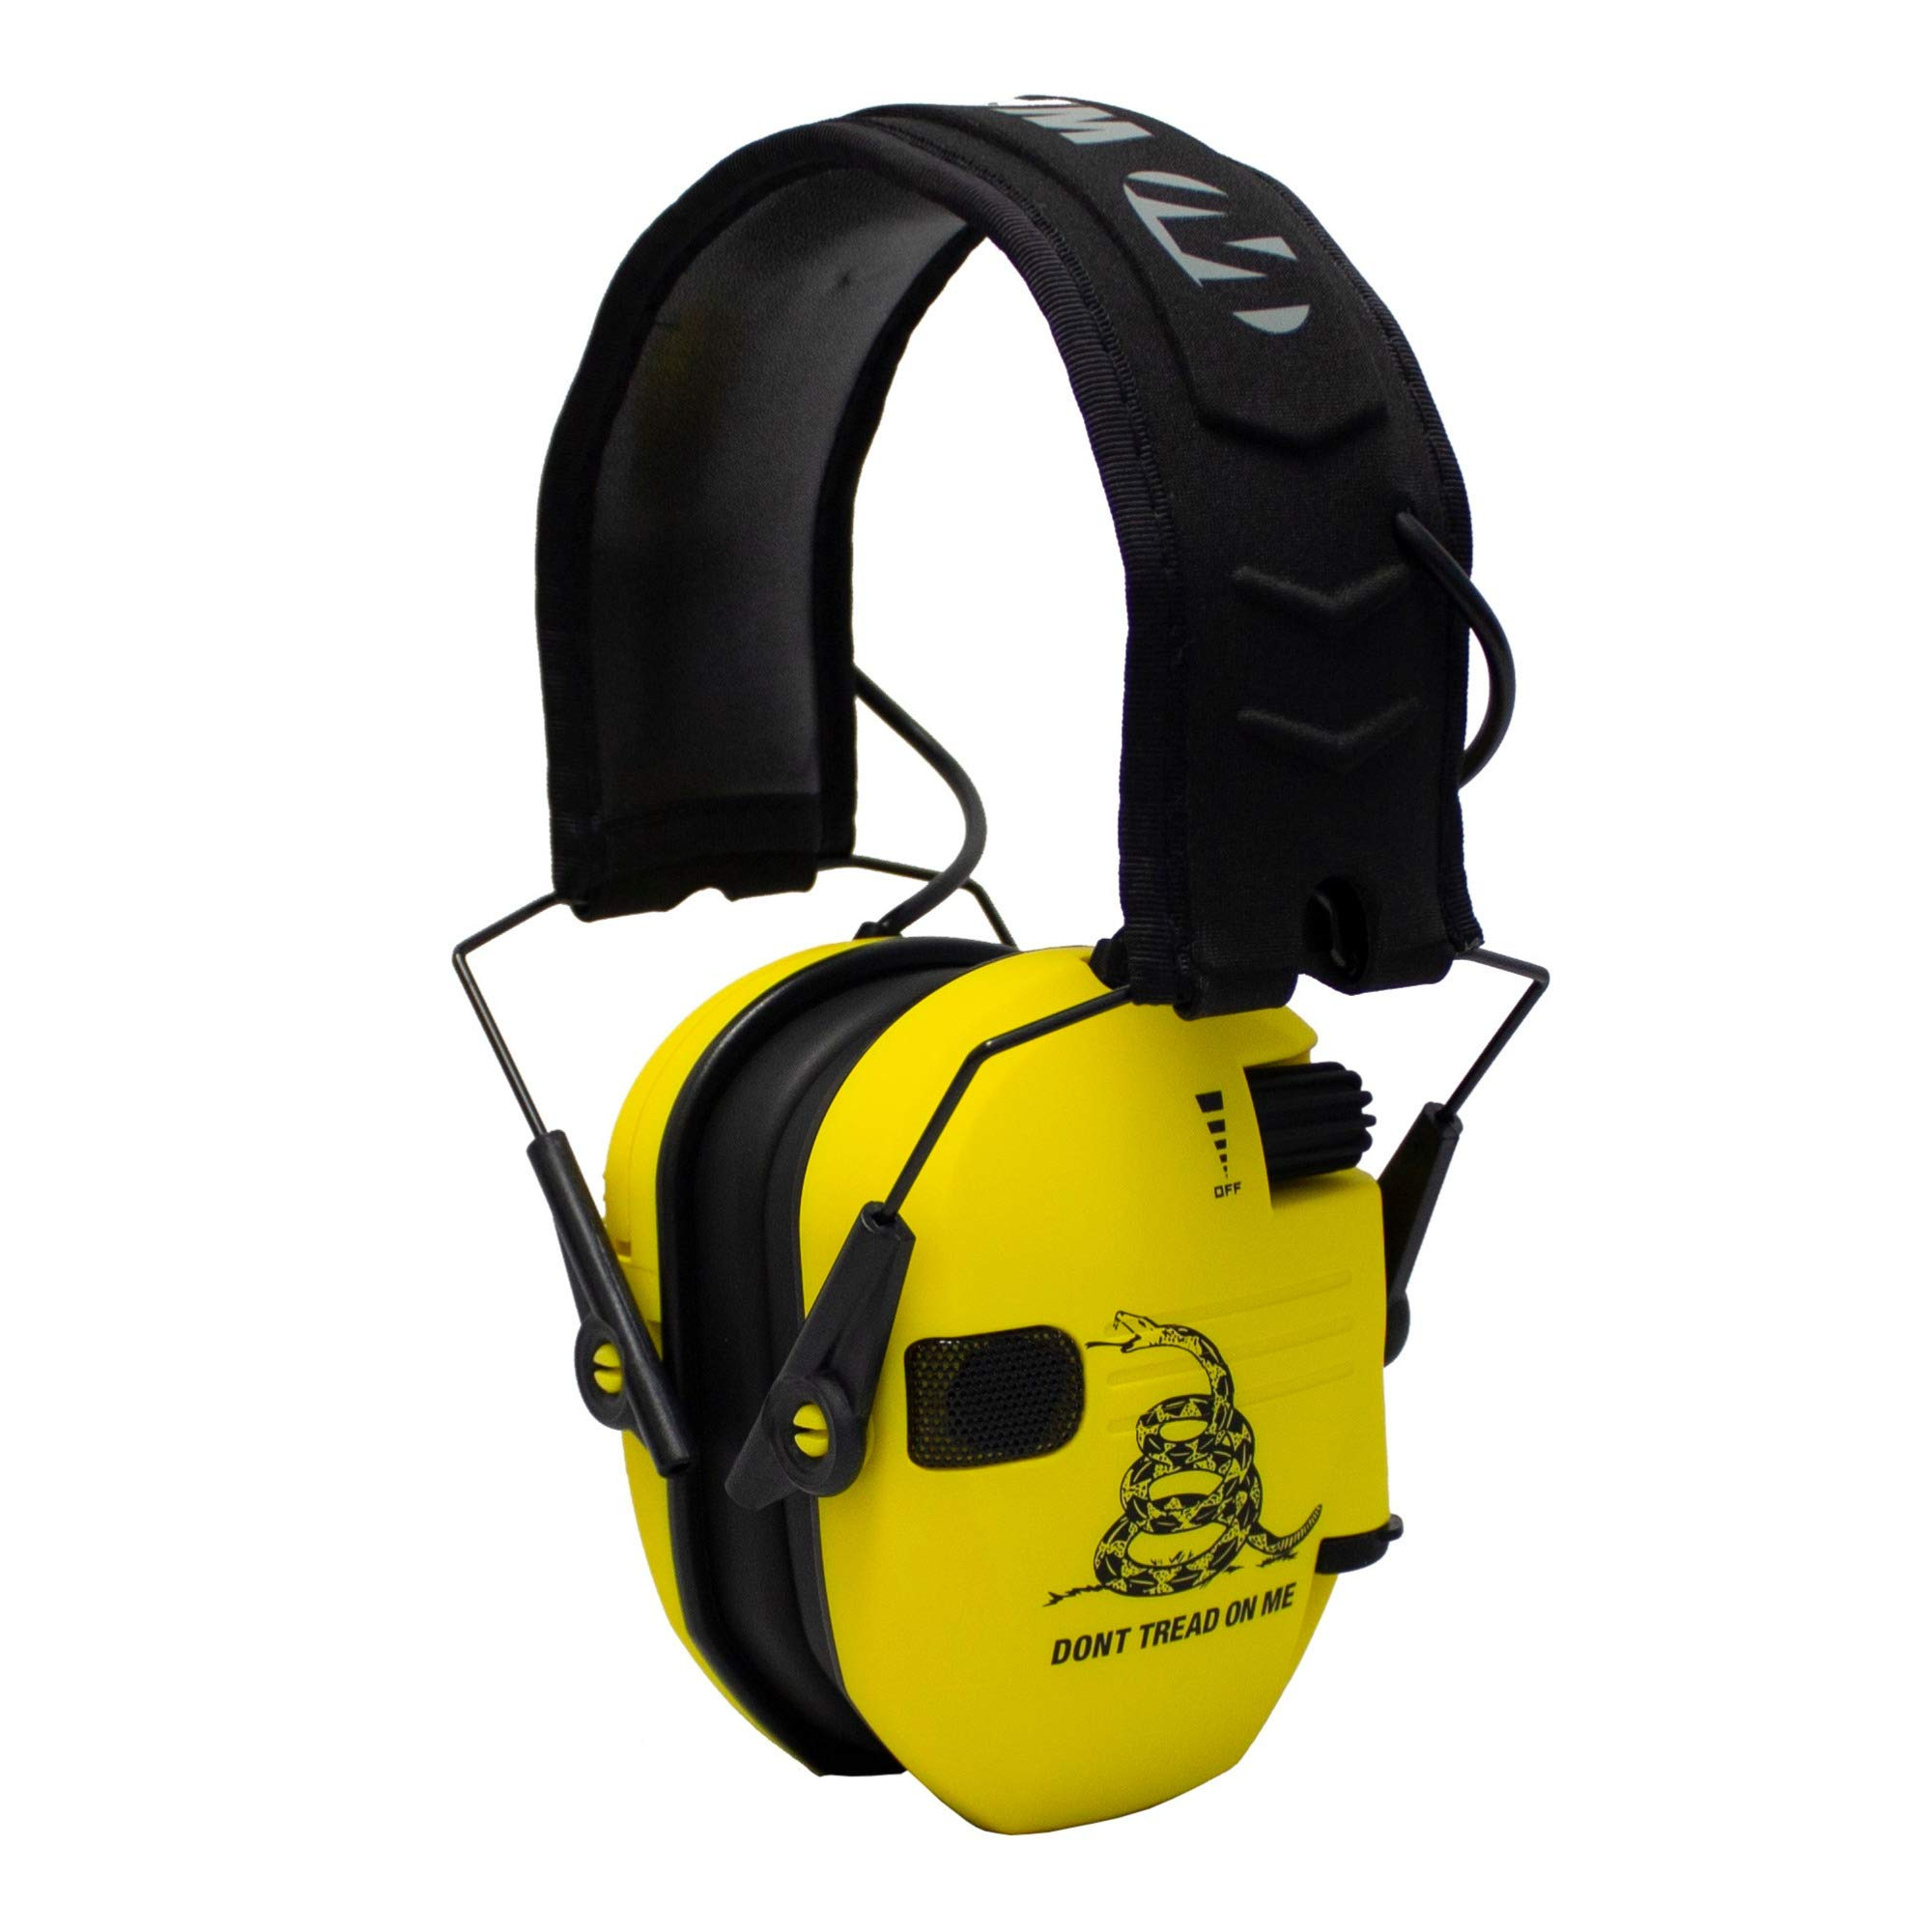 Walker's Razor Slim Electronic Shooting Hearing Protection Muff (Don't Tread On Me, Yellow) by Walker's Game Ear